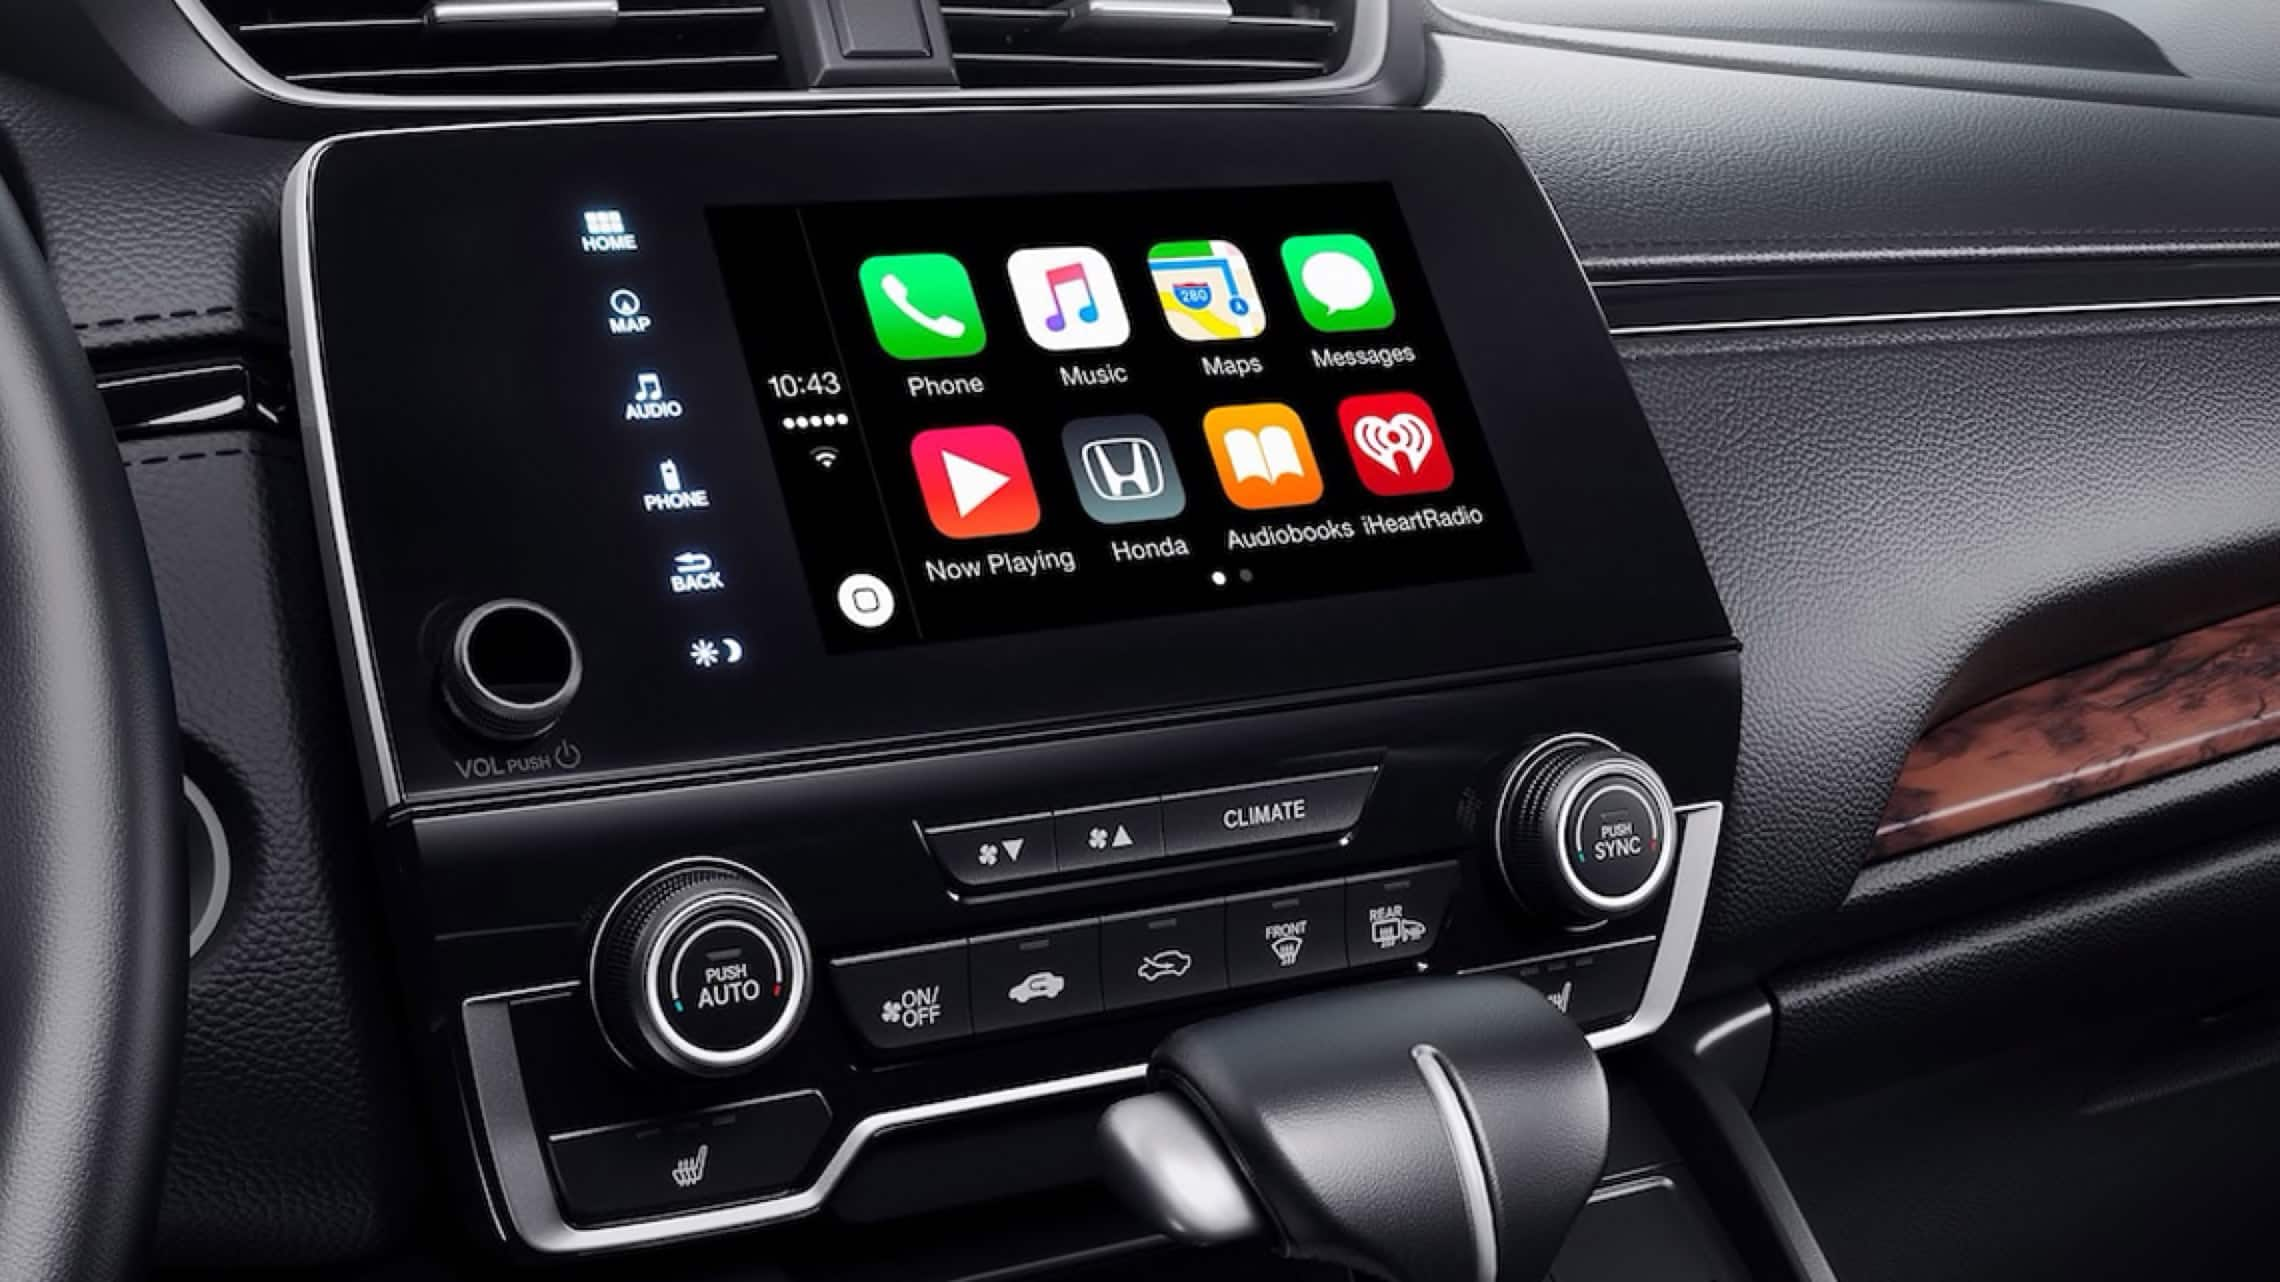 Display Audio touch-screen with Apple CarPlay® integration menu in the 2019 Honda CR-V.